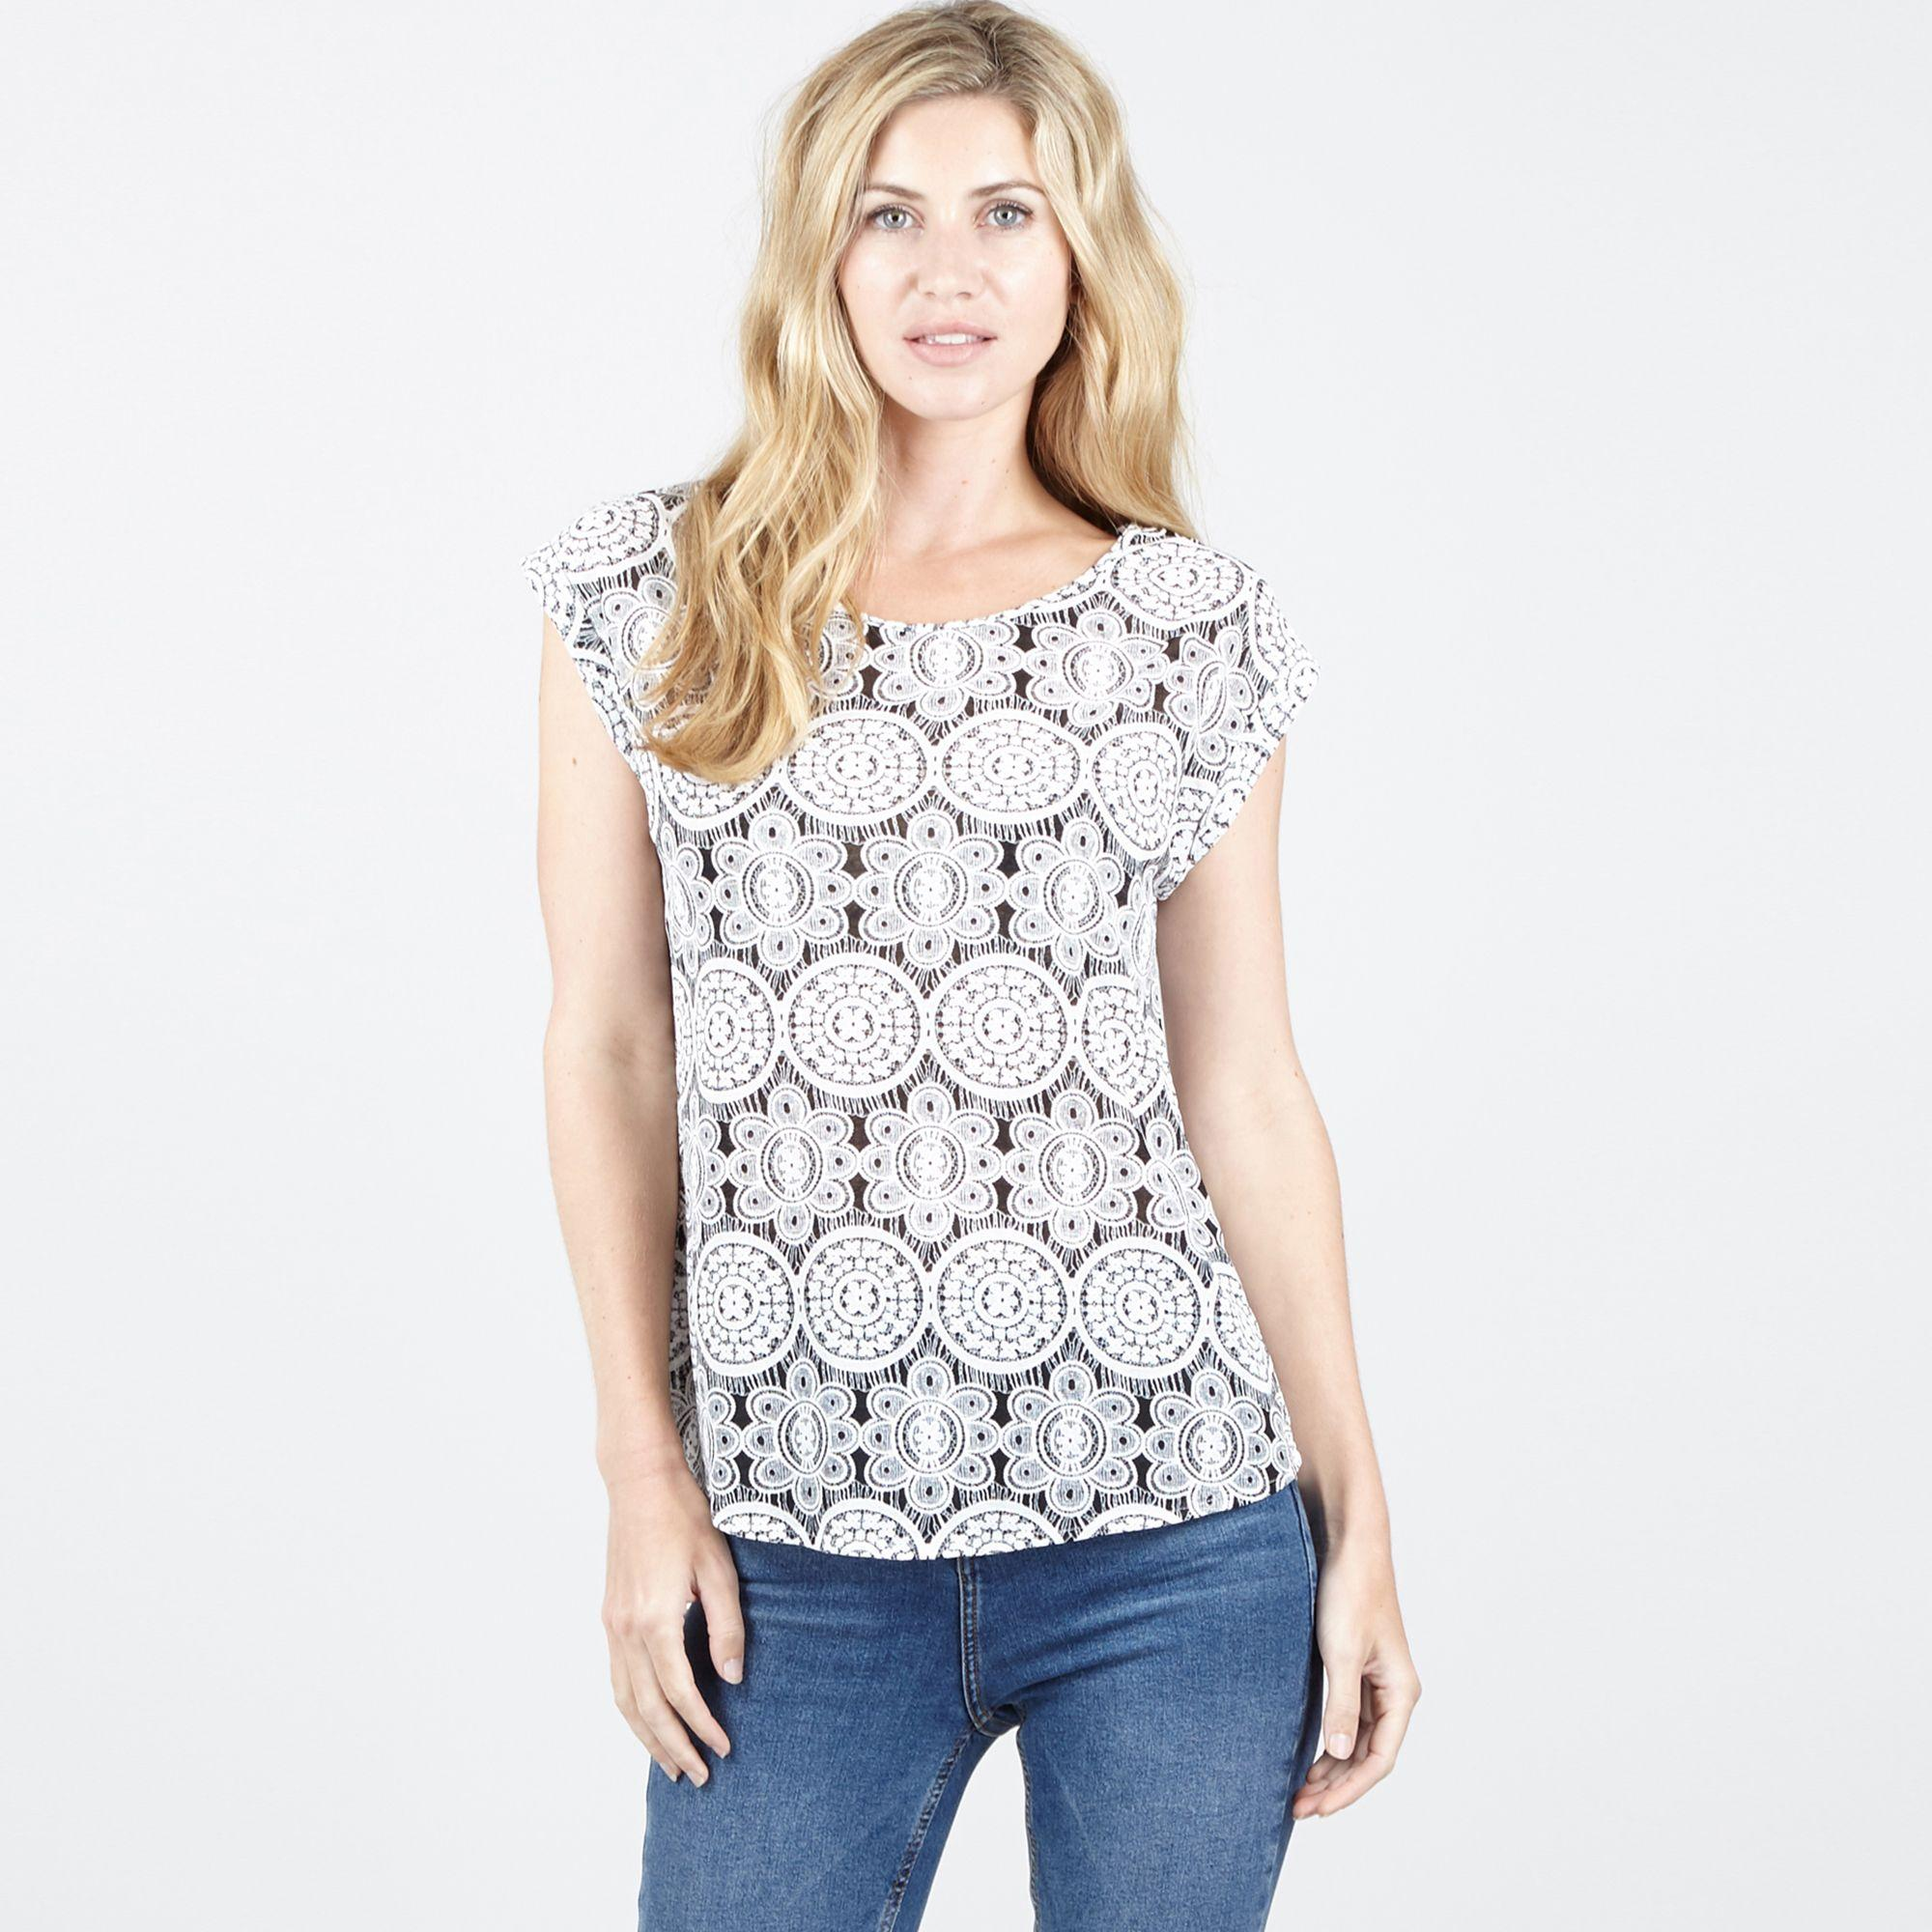 c5742cc73ec977 Izabel London White Printed T-shirt in White - Lyst